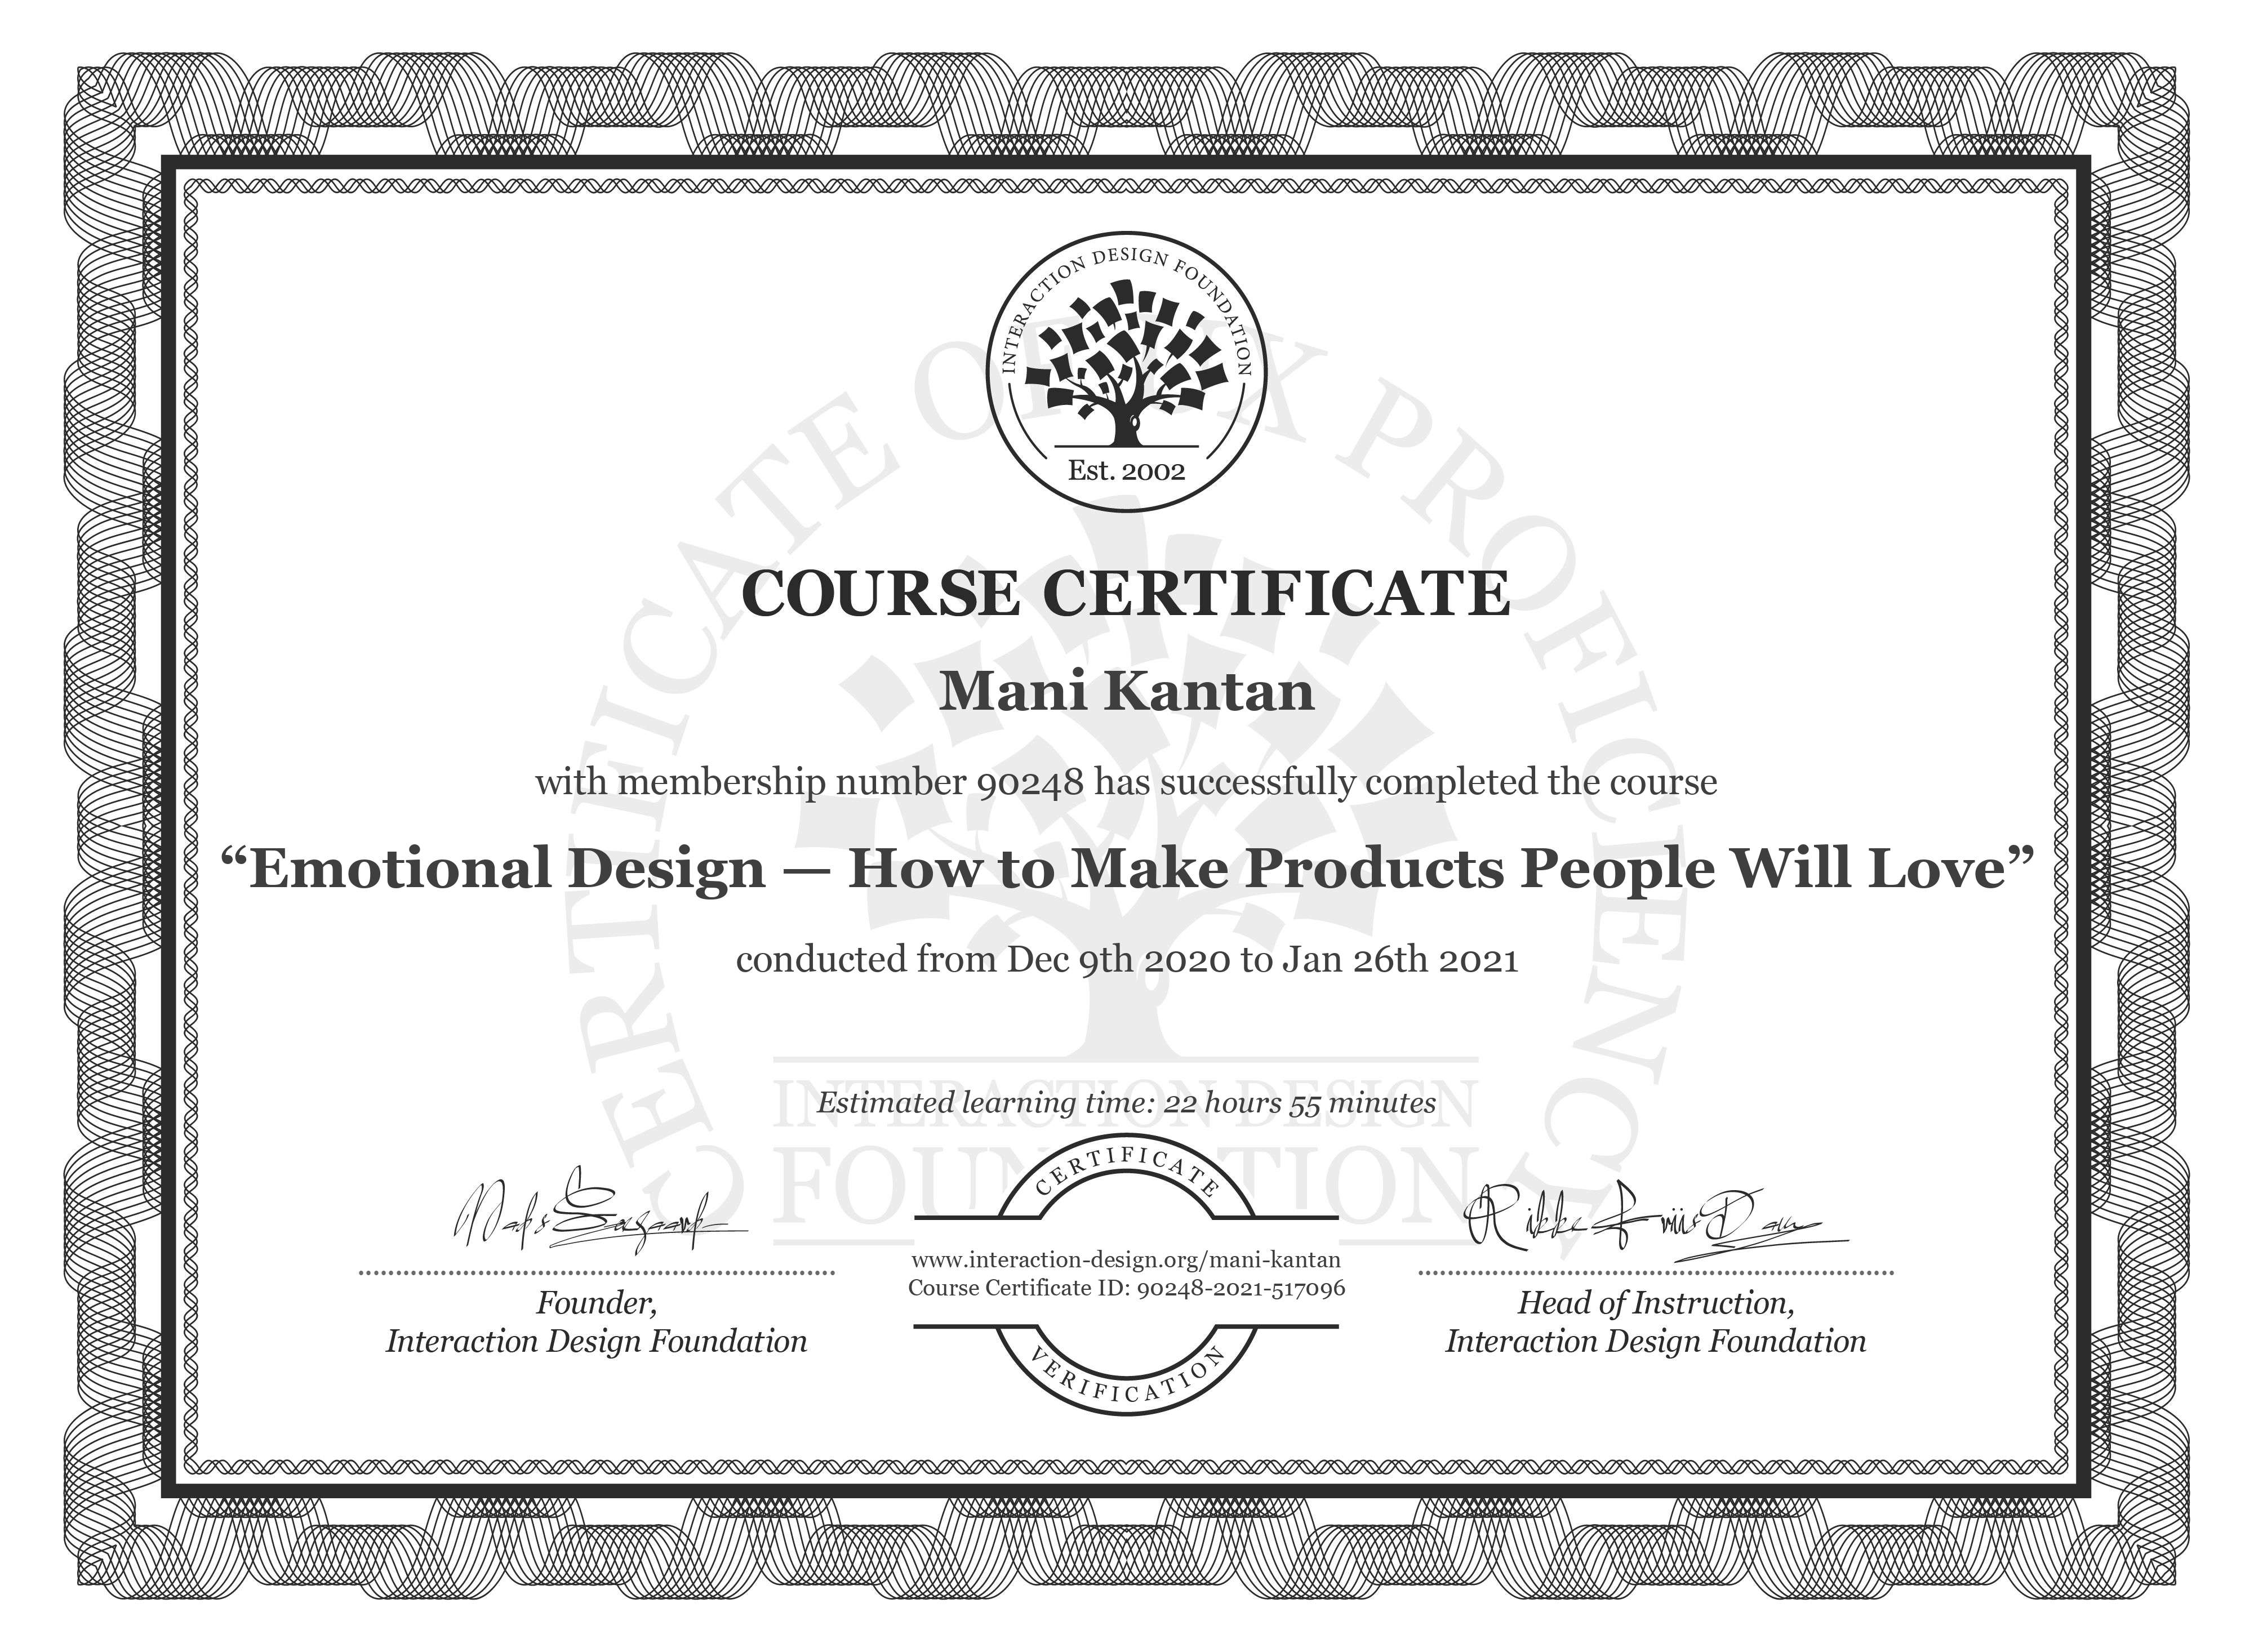 Mani Kantan's Course Certificate: Emotional Design — How to Make Products People Will Love